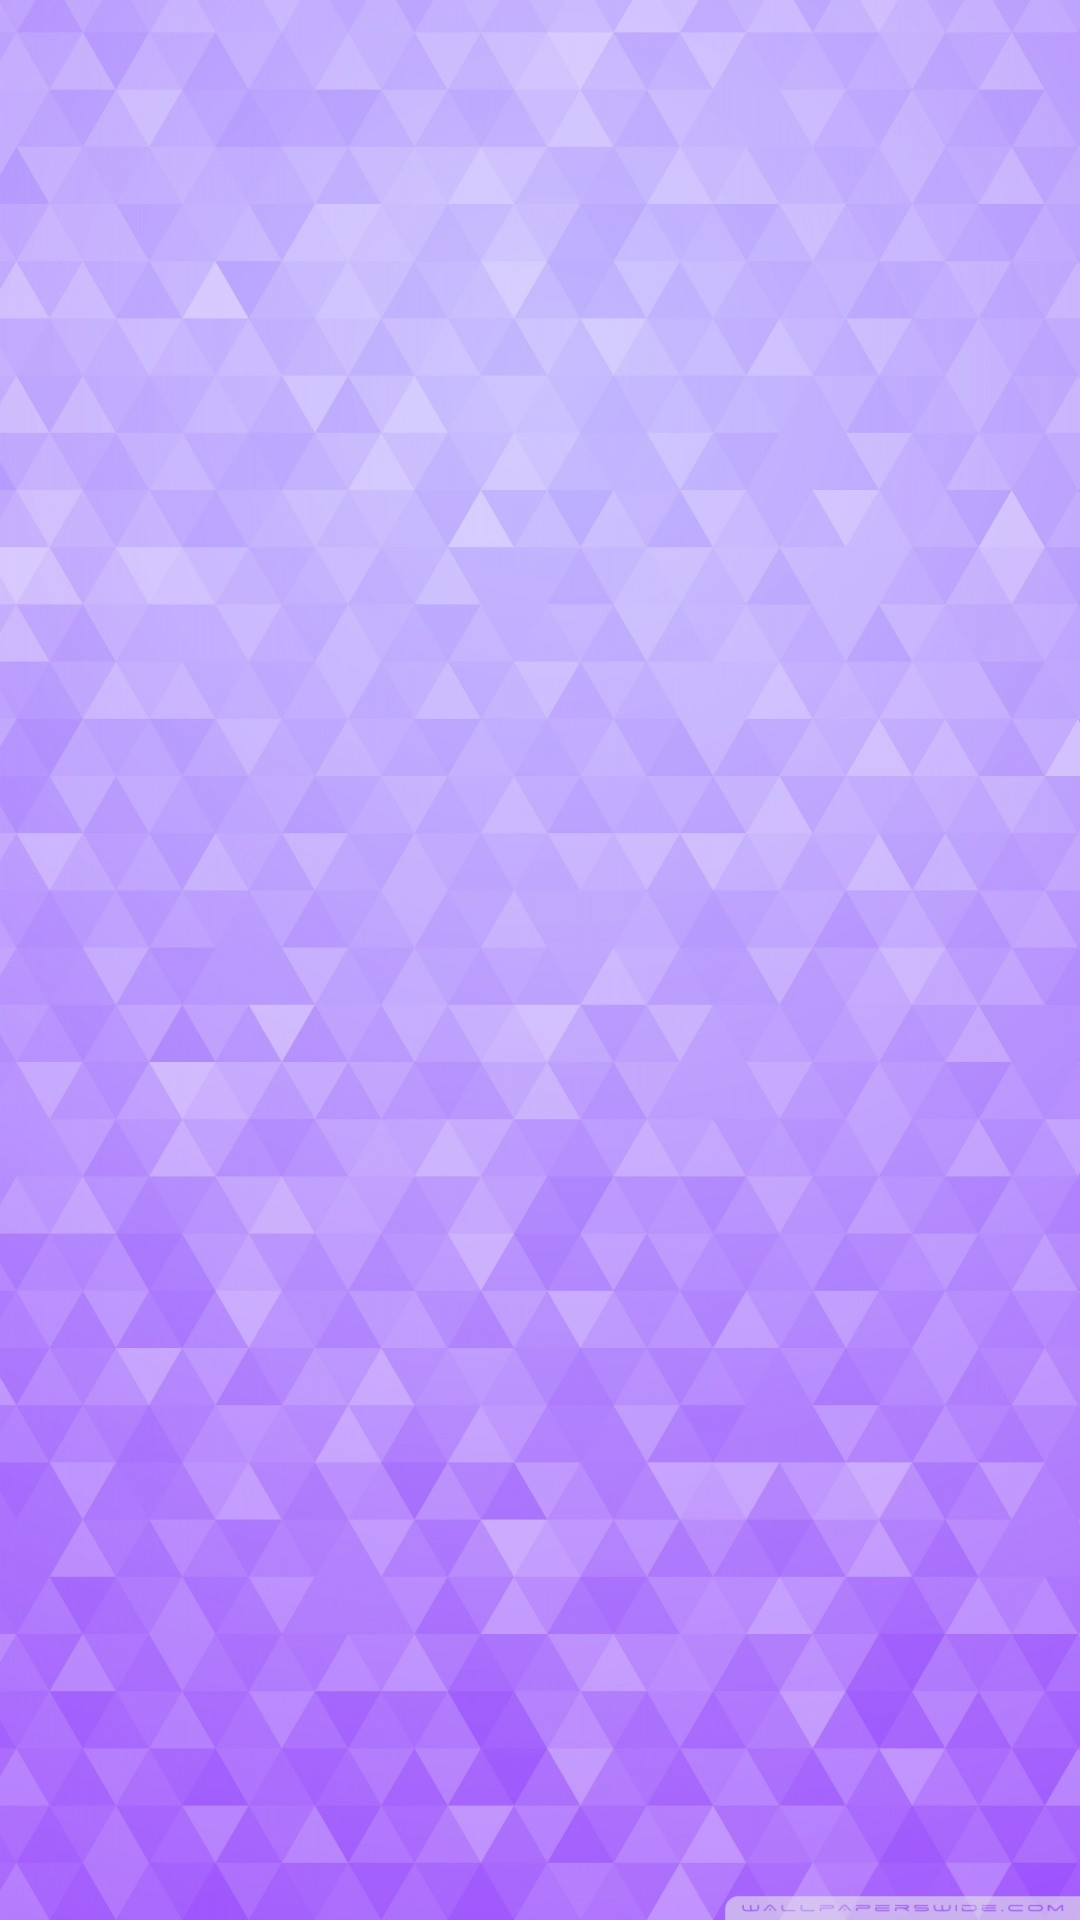 Free Violet Geometric Triangles Pattern Gradient phone wallpaper by brit_shedwin